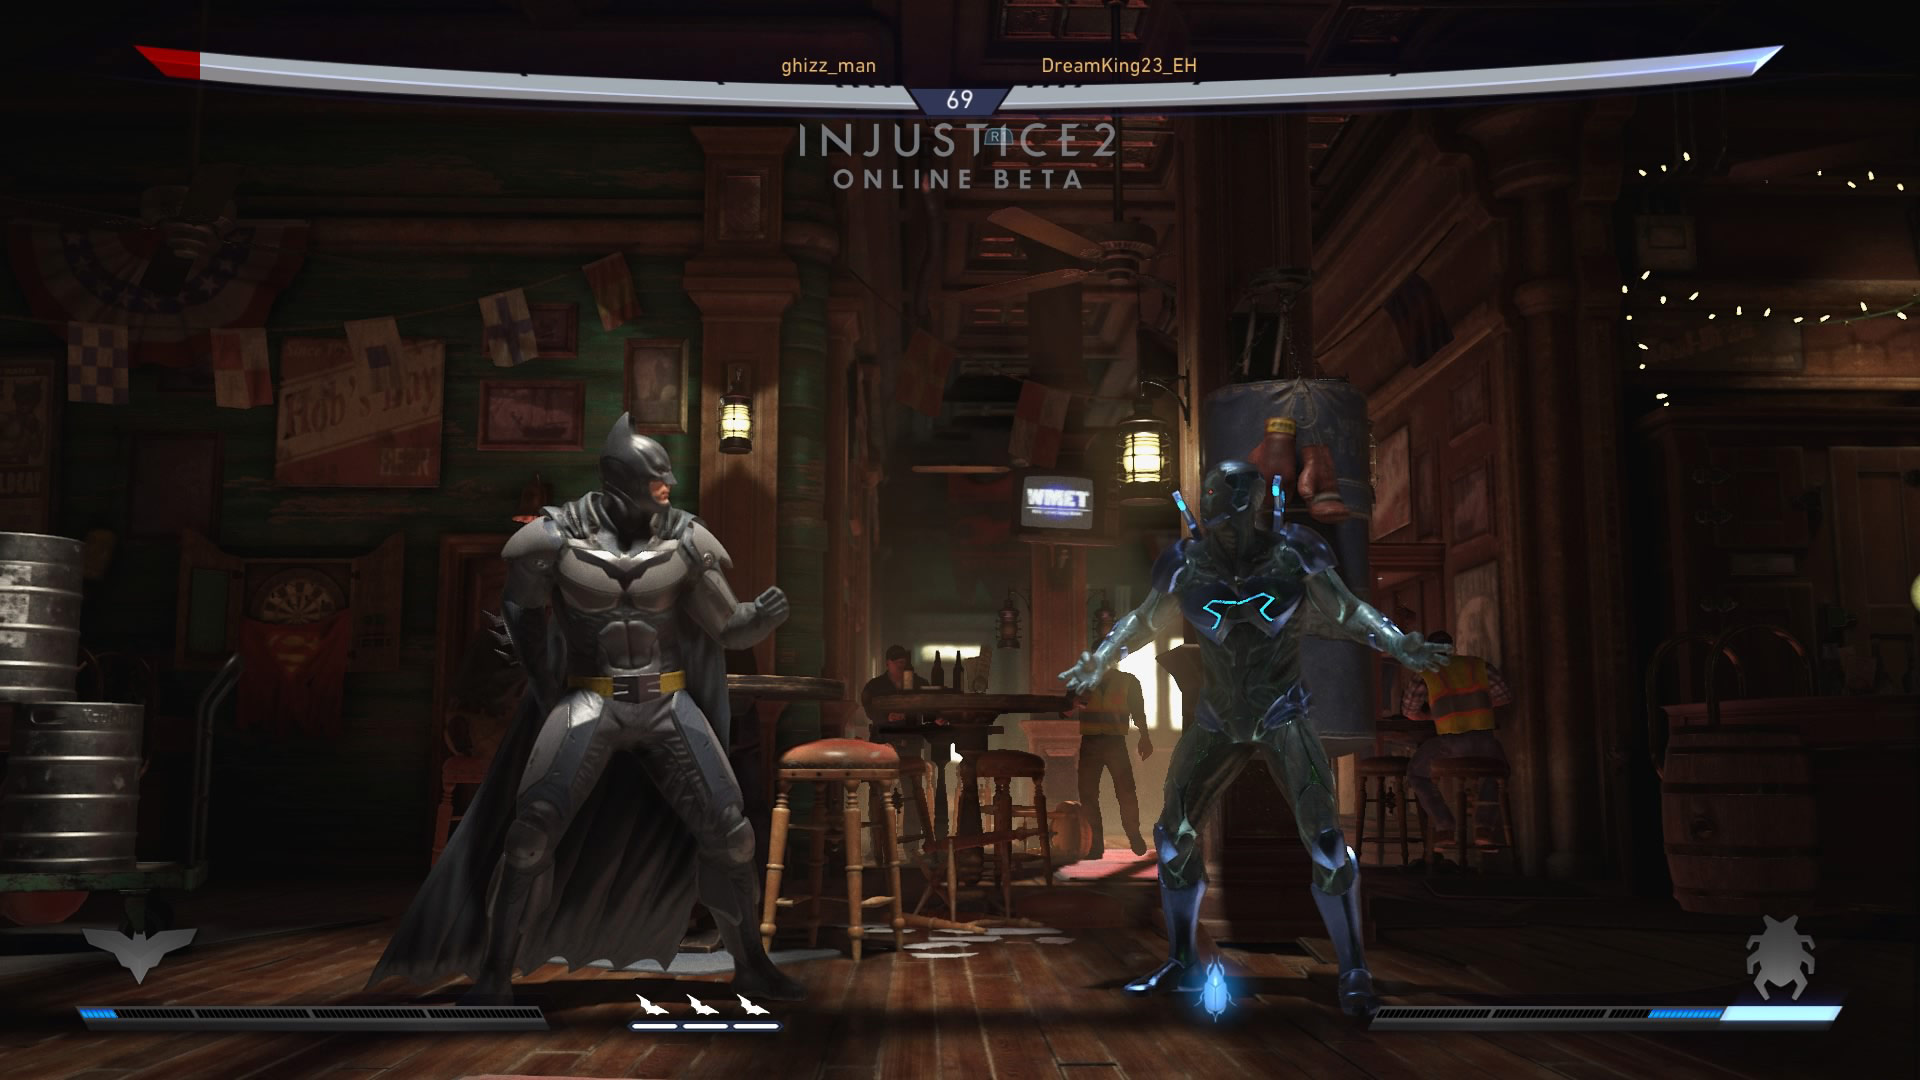 Blue Beetle in the Injustice 2 beta 5 out of 6 image gallery